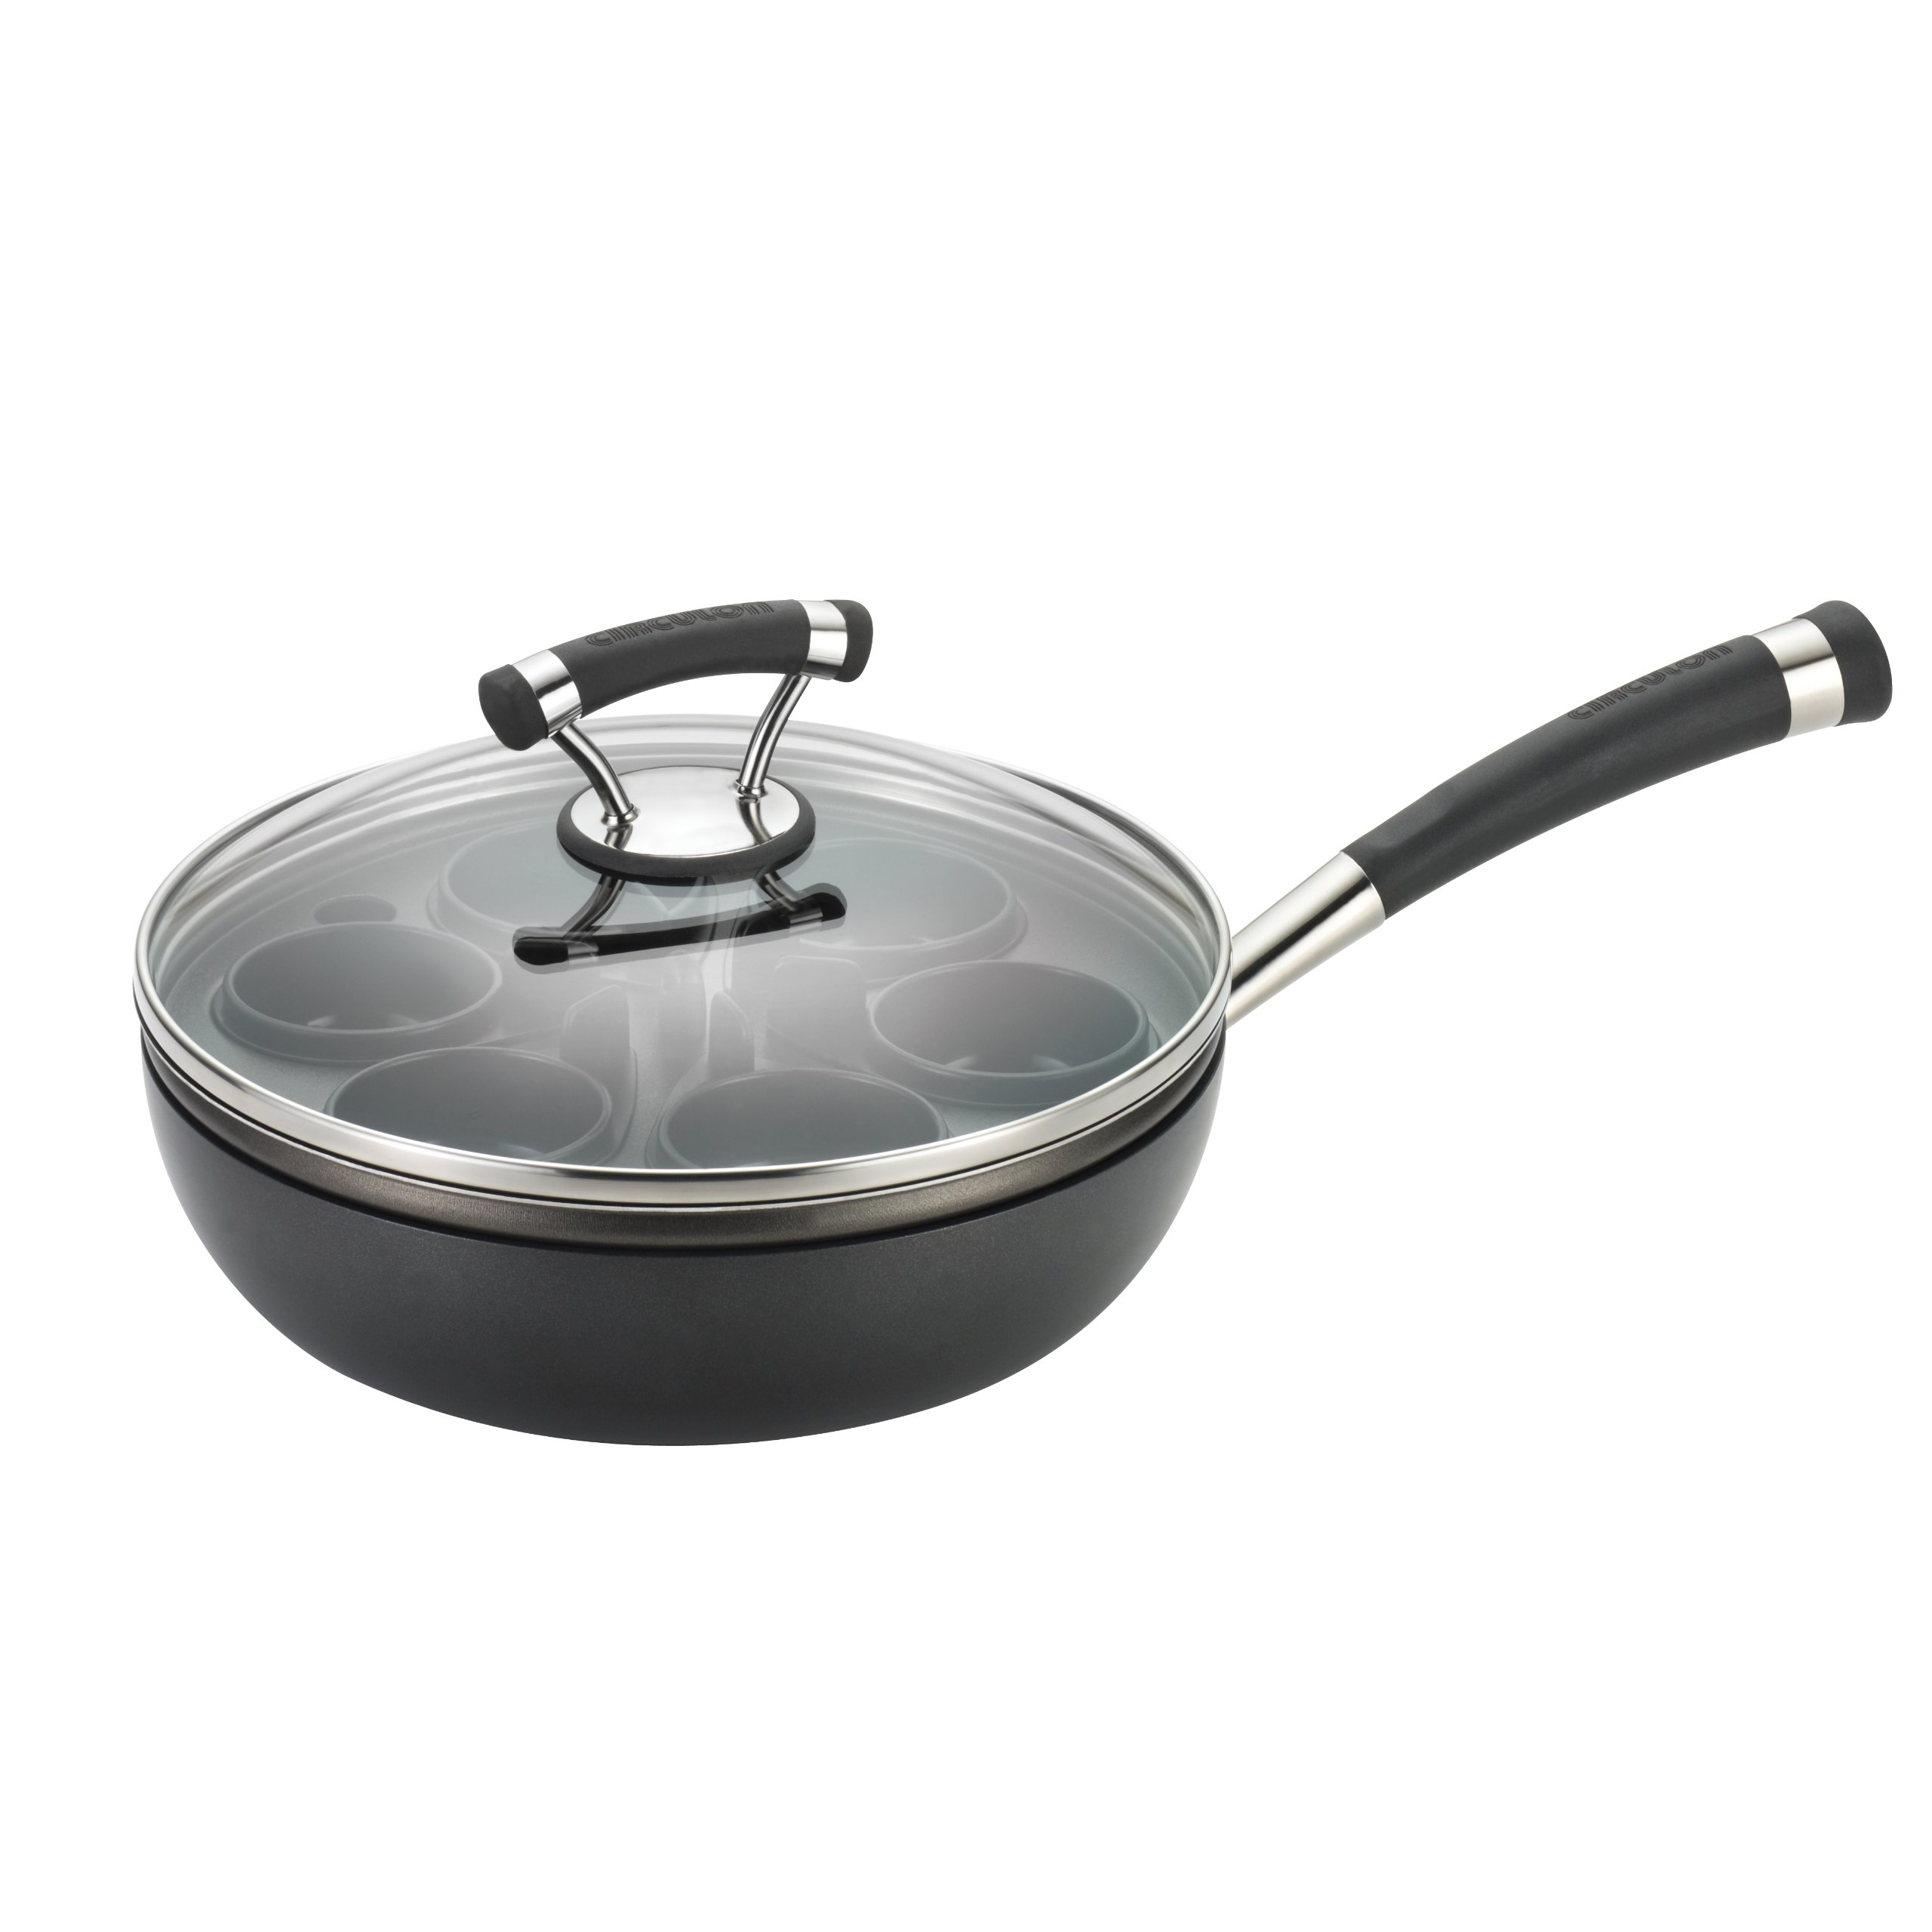 Circulon Contempo Hard Anodized Nonstick 9-1/2-Inch Covered Egg Poacher